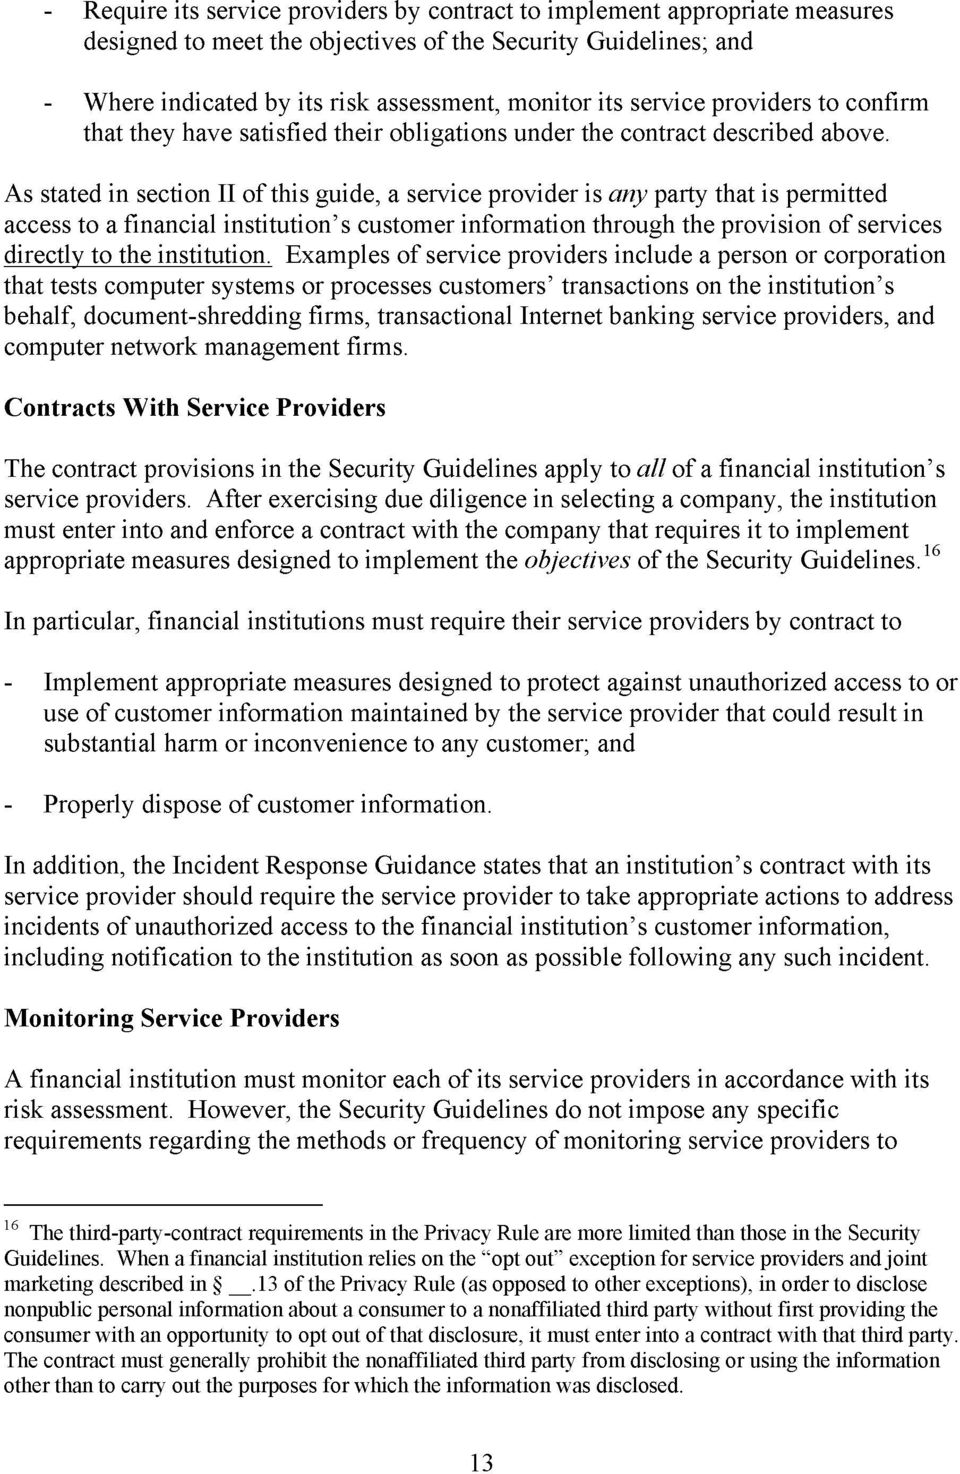 As stated in section II of this guide, a service provider is any party that is permitted access to a financial institution s customer information through the provision of services directly to the